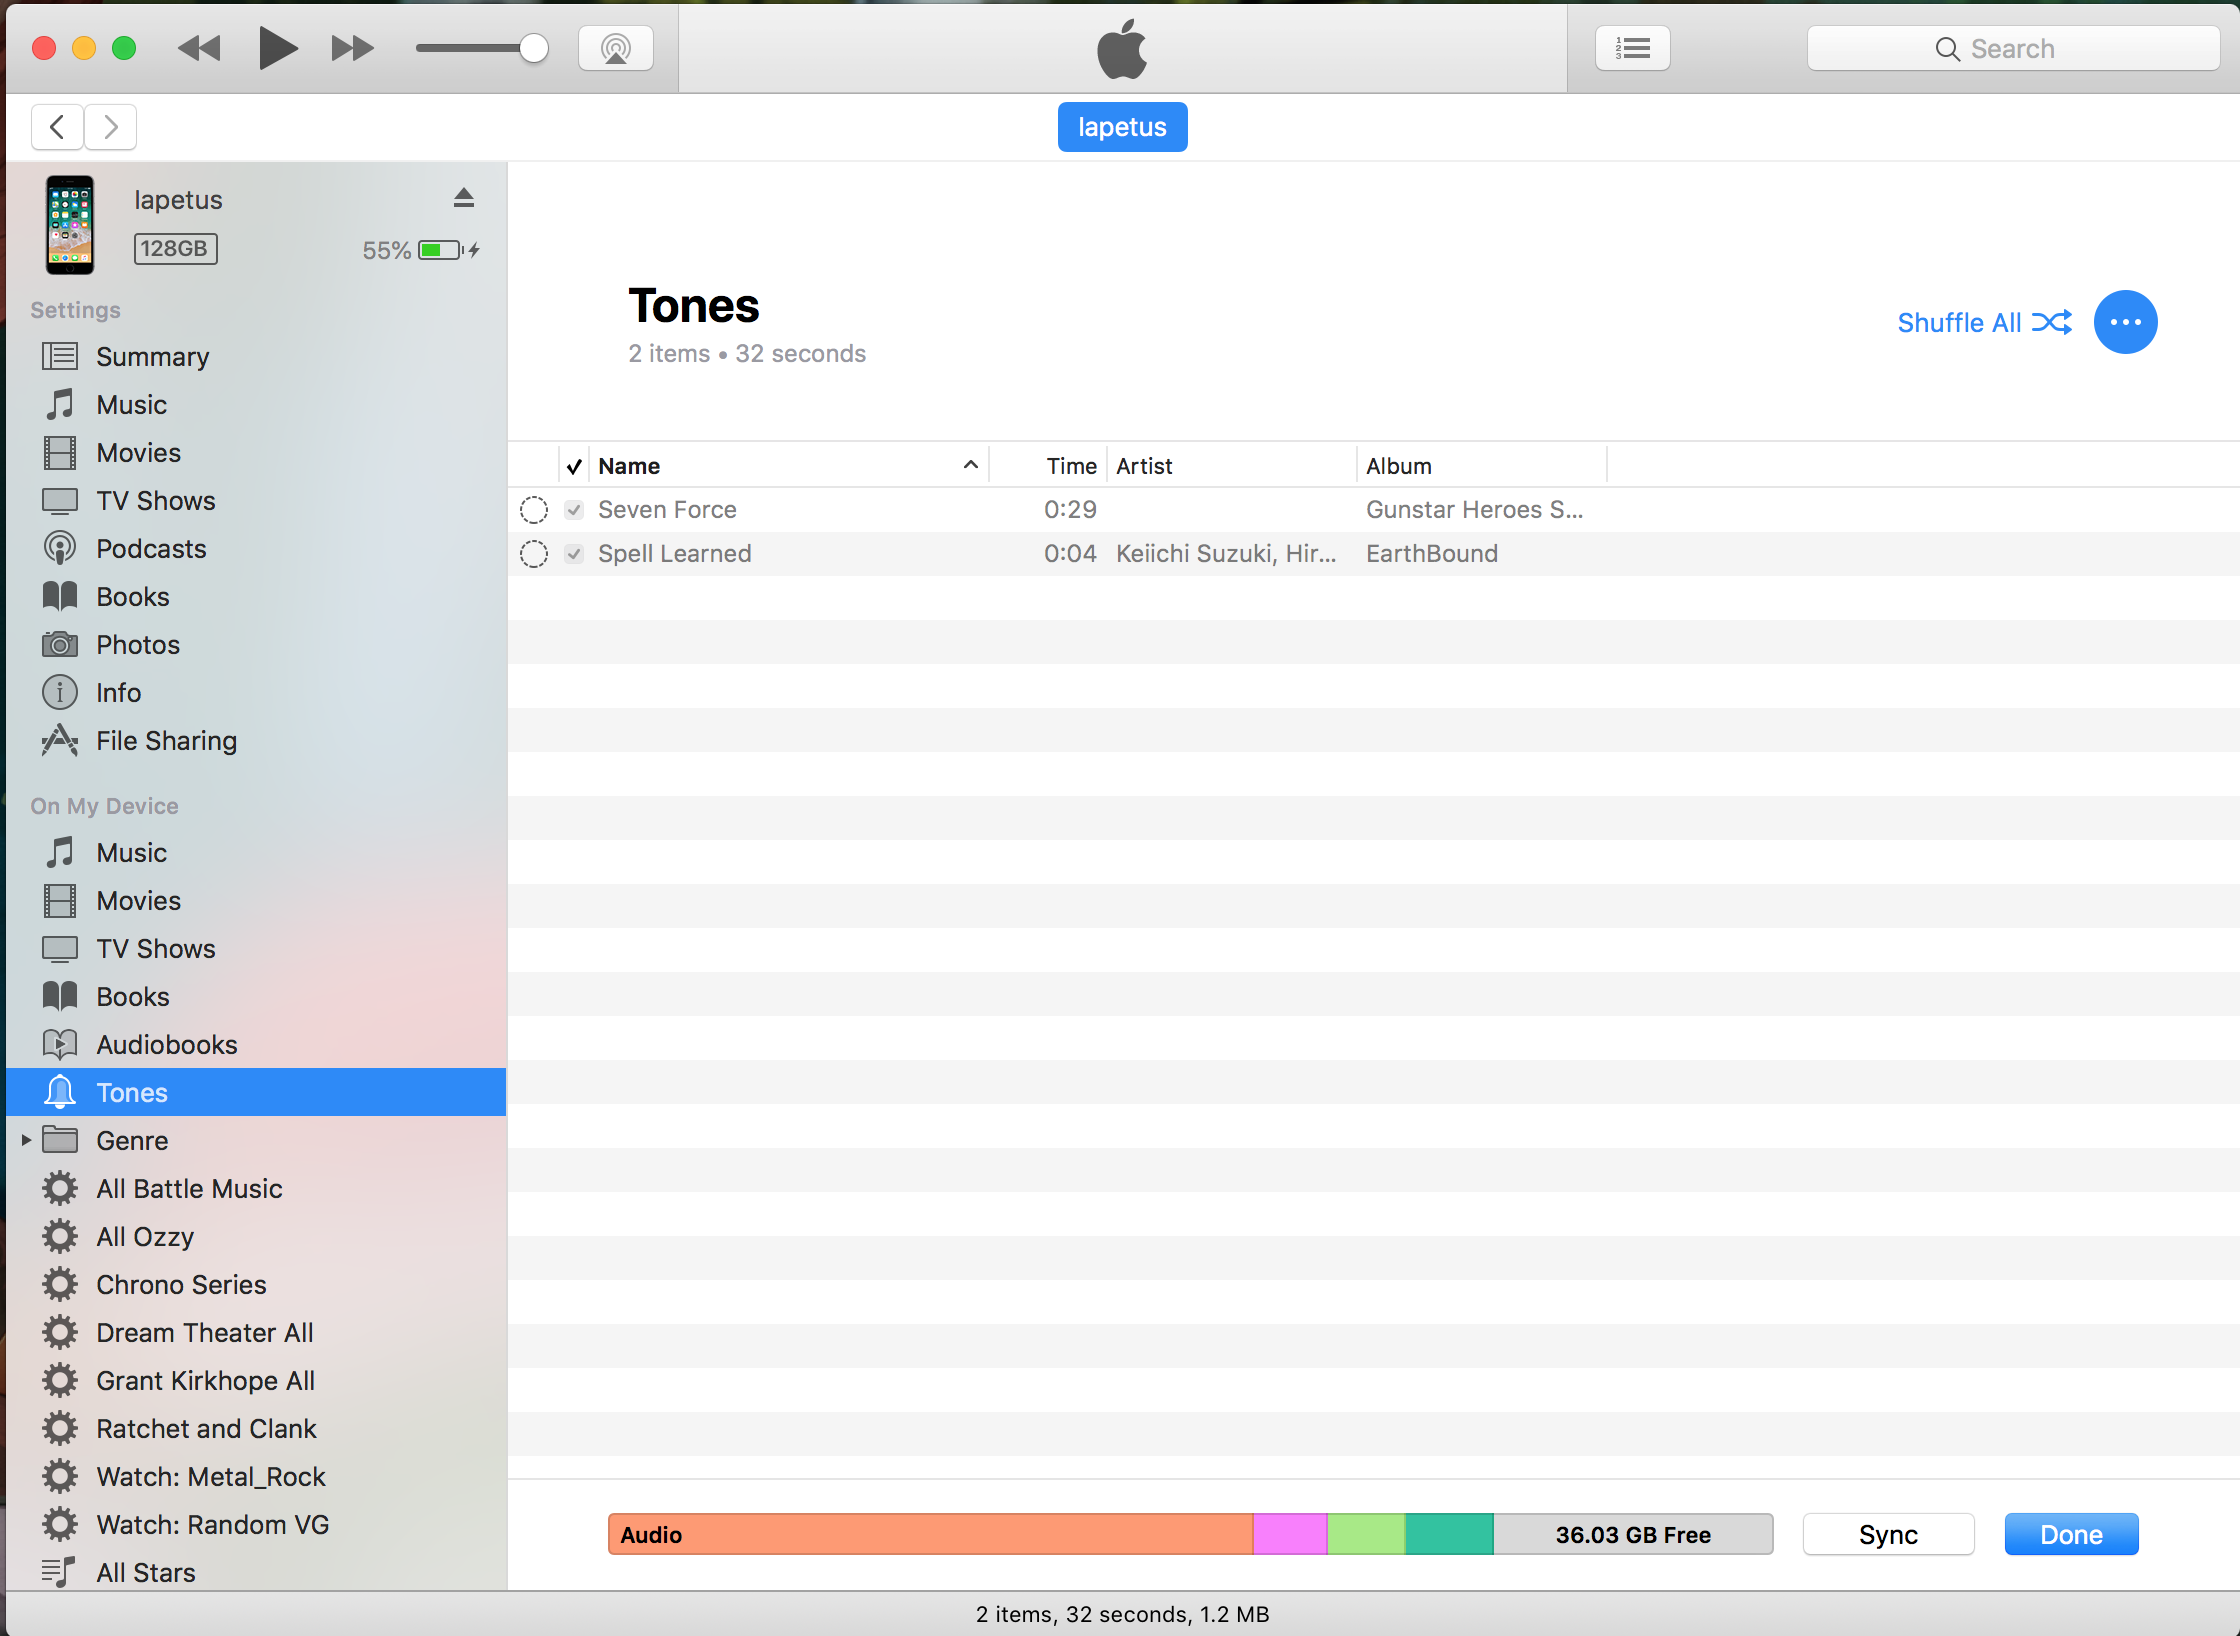 ringtone in itunes is greyed out